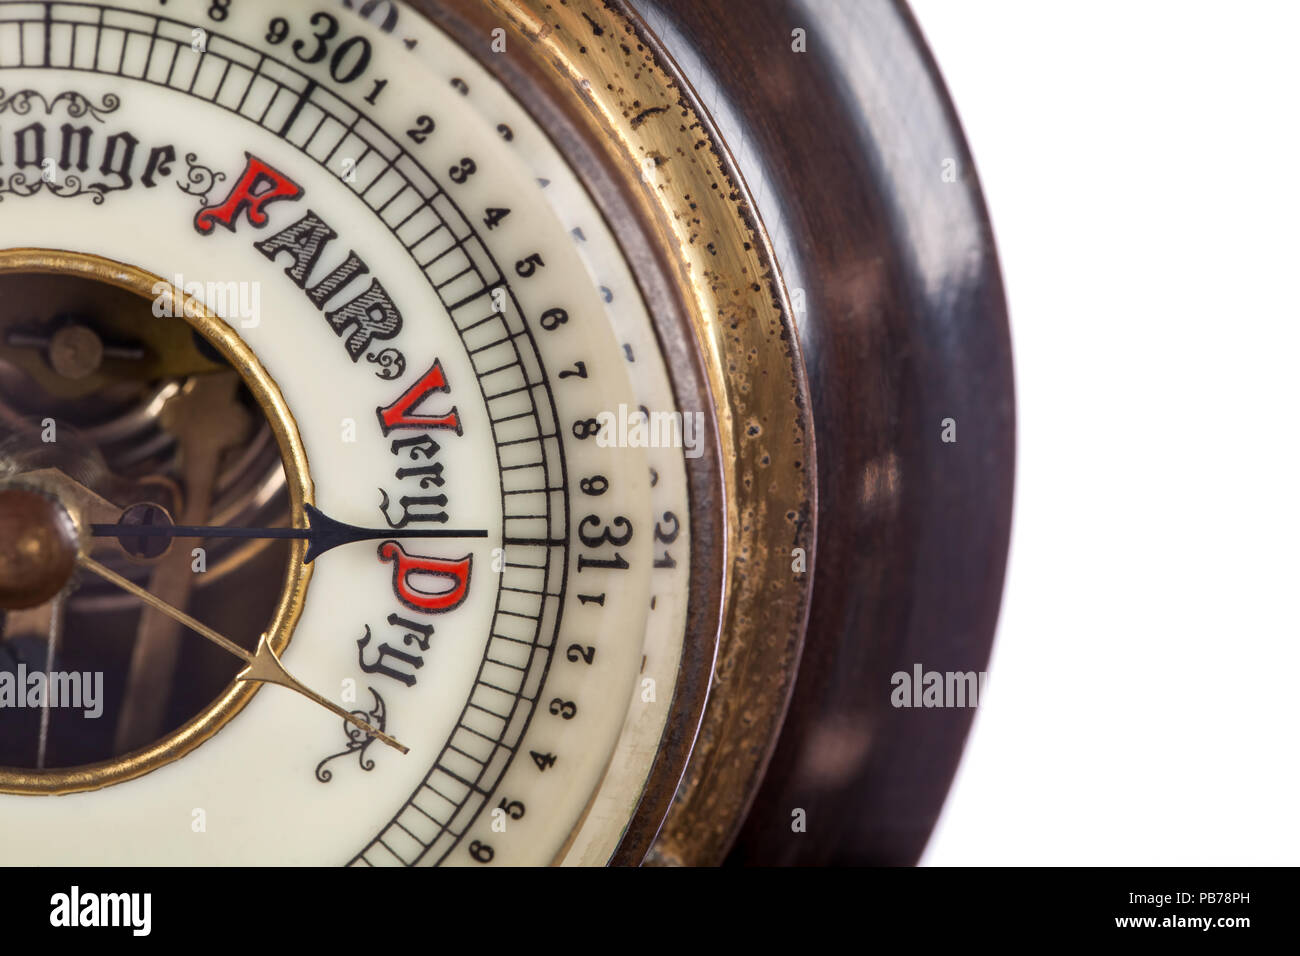 Heat wave. Very dry weather forecast by vintage barometer. Extreme hot temperature and drought. Global warming and climate change Forecasting a heatwa - Stock Image